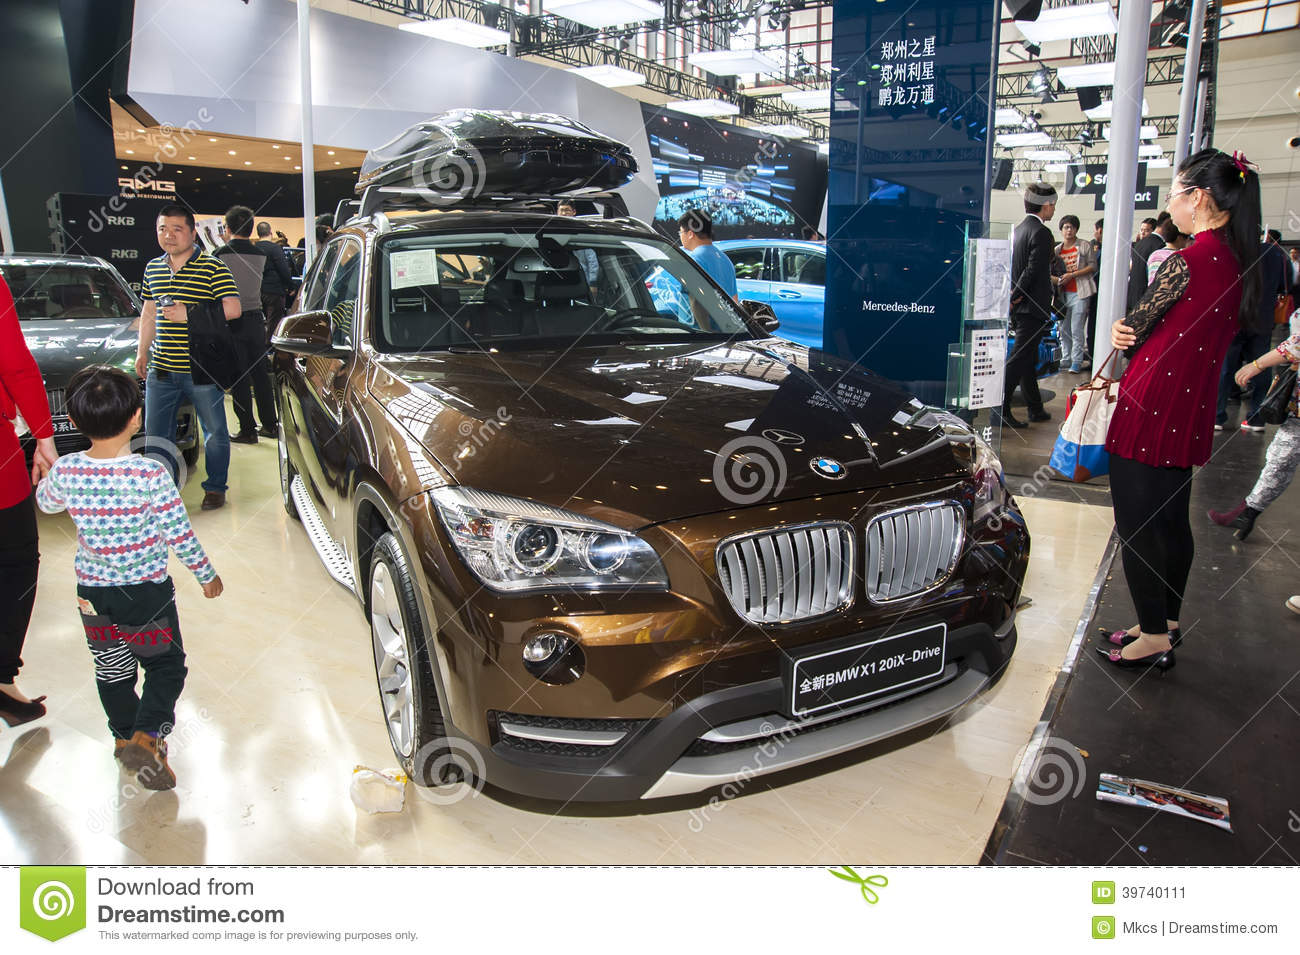 Brown Bmw X1 Car Editorial Photo Image Of Concept Motor 39740111